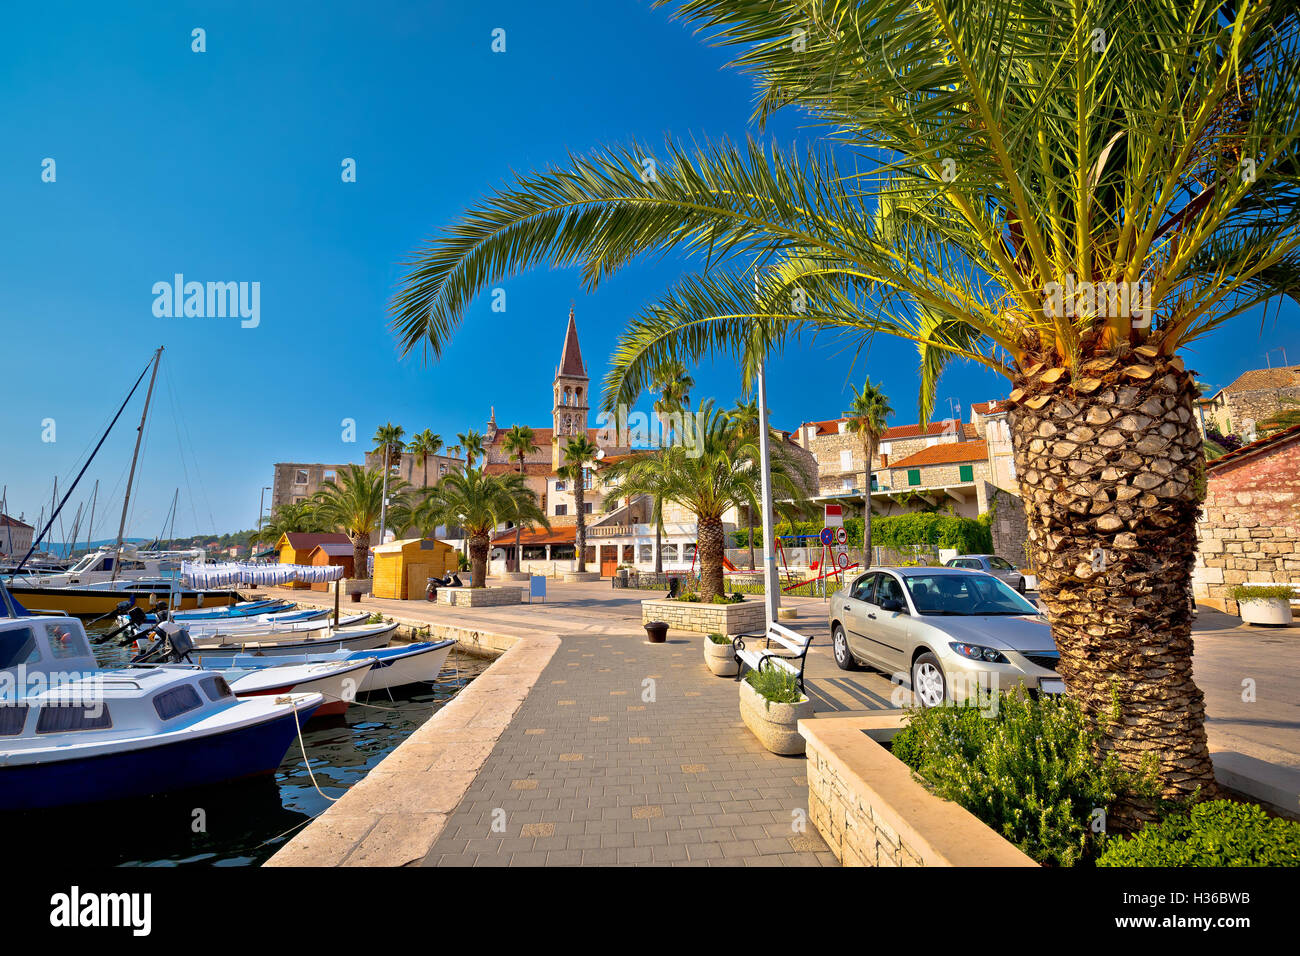 Town of Milna on Brac island waterfront view, Dalmatia, Croatia - Stock Image